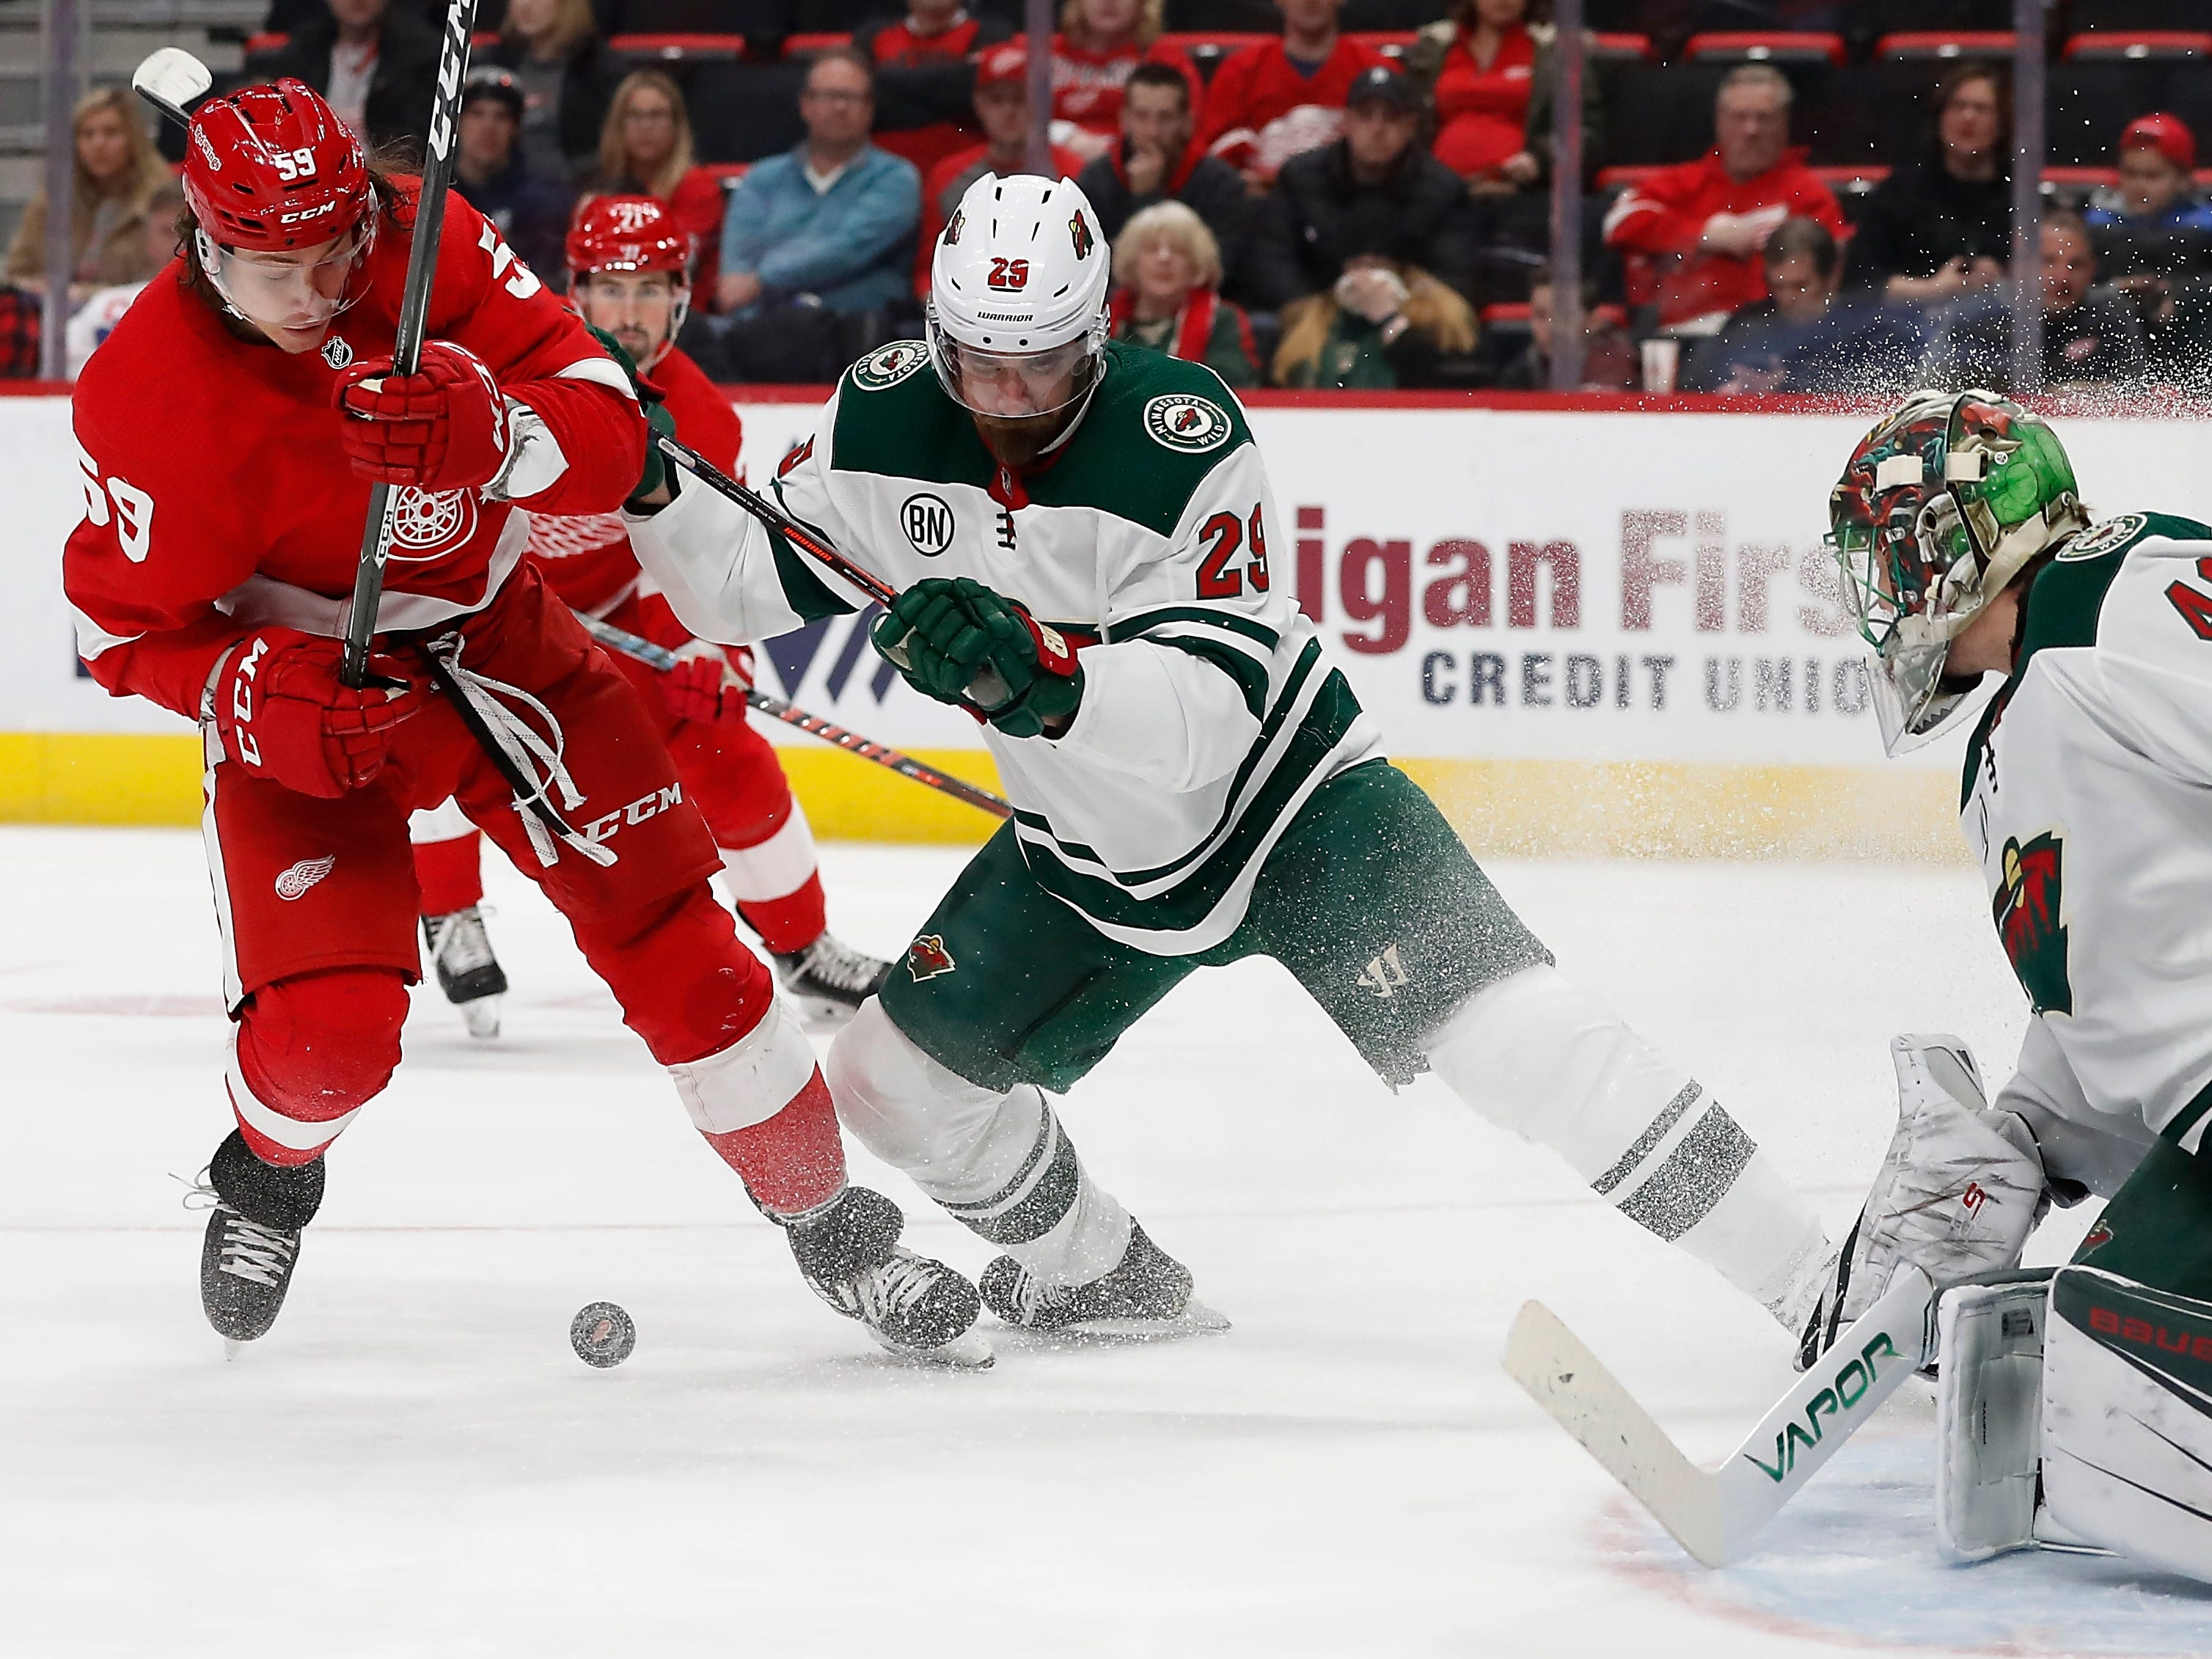 Minnesota Wild defenseman Greg Pateryn (29) checks Detroit Red Wings left wing Tyler Bertuzzi (59) in front of goaltender Devan Dubnyk (40) during the first period of an NHL hockey game Friday, Feb. 22, 2019, in Detroit.